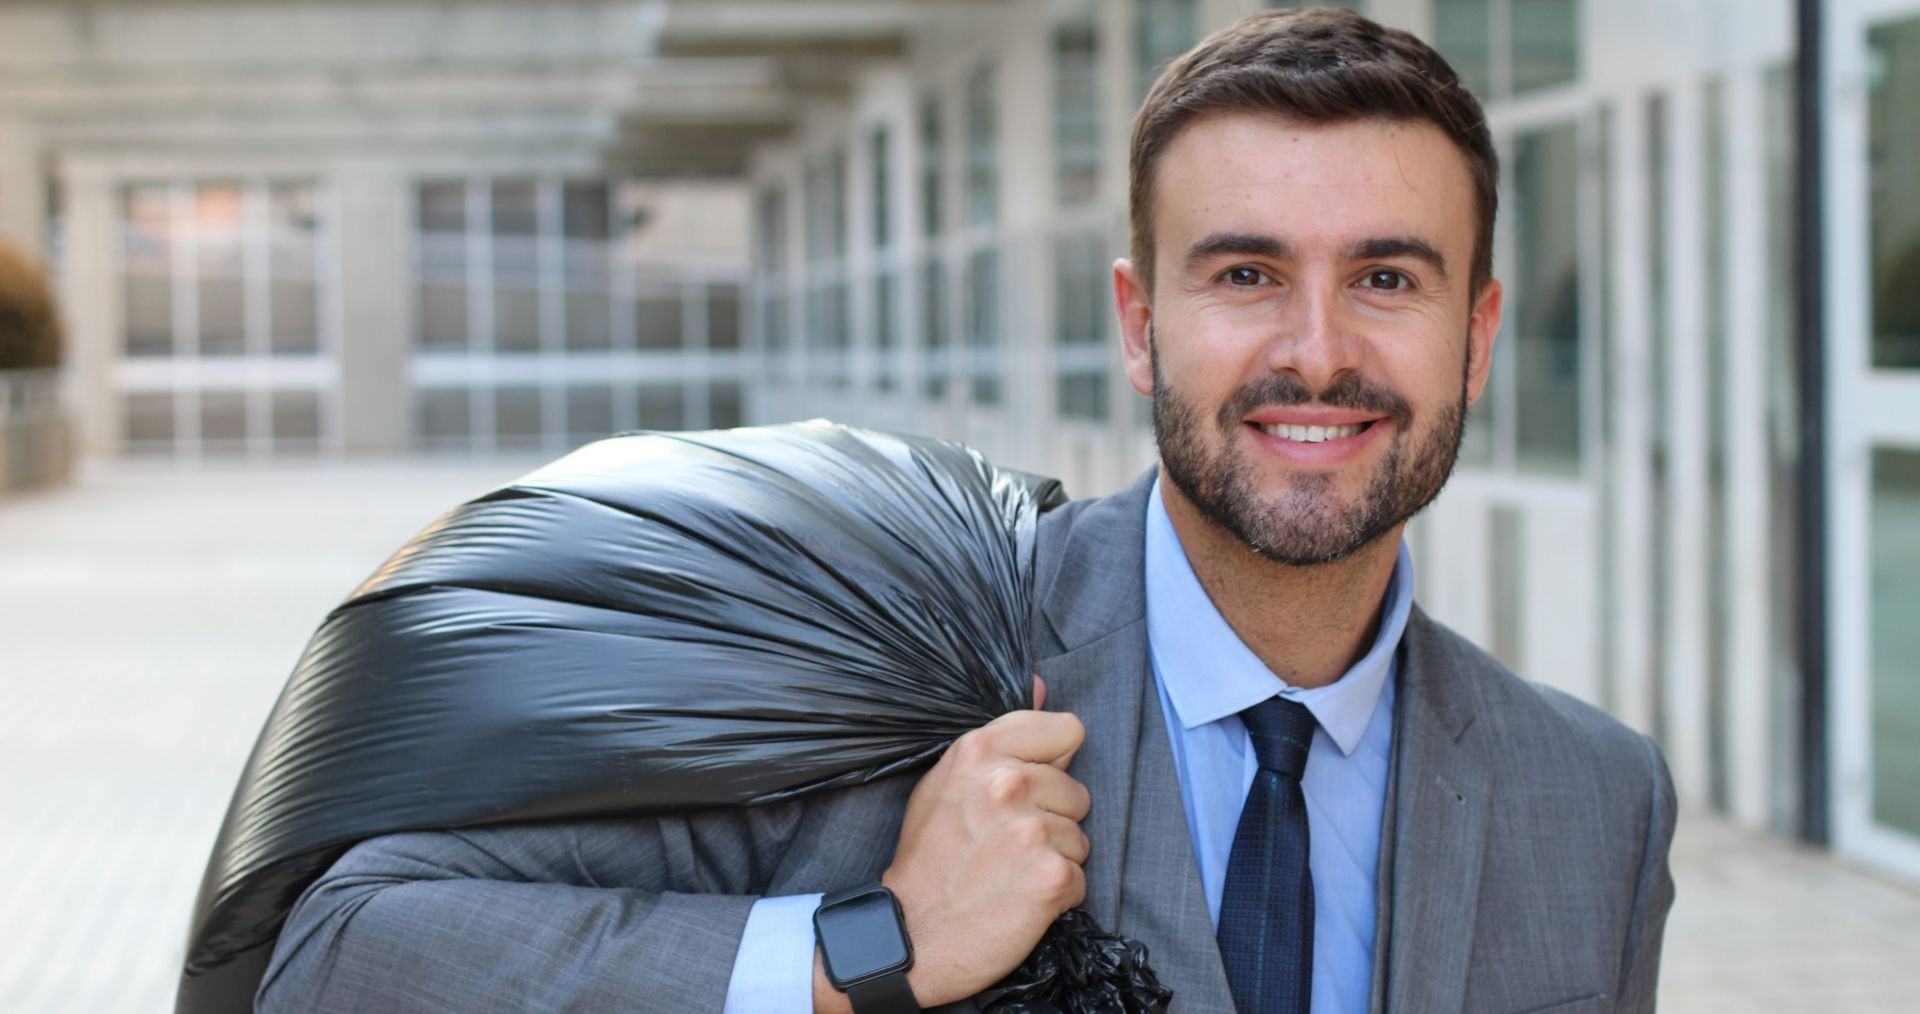 Reduce waste costs at work|Biz man with garbage bag slung over his shoulder